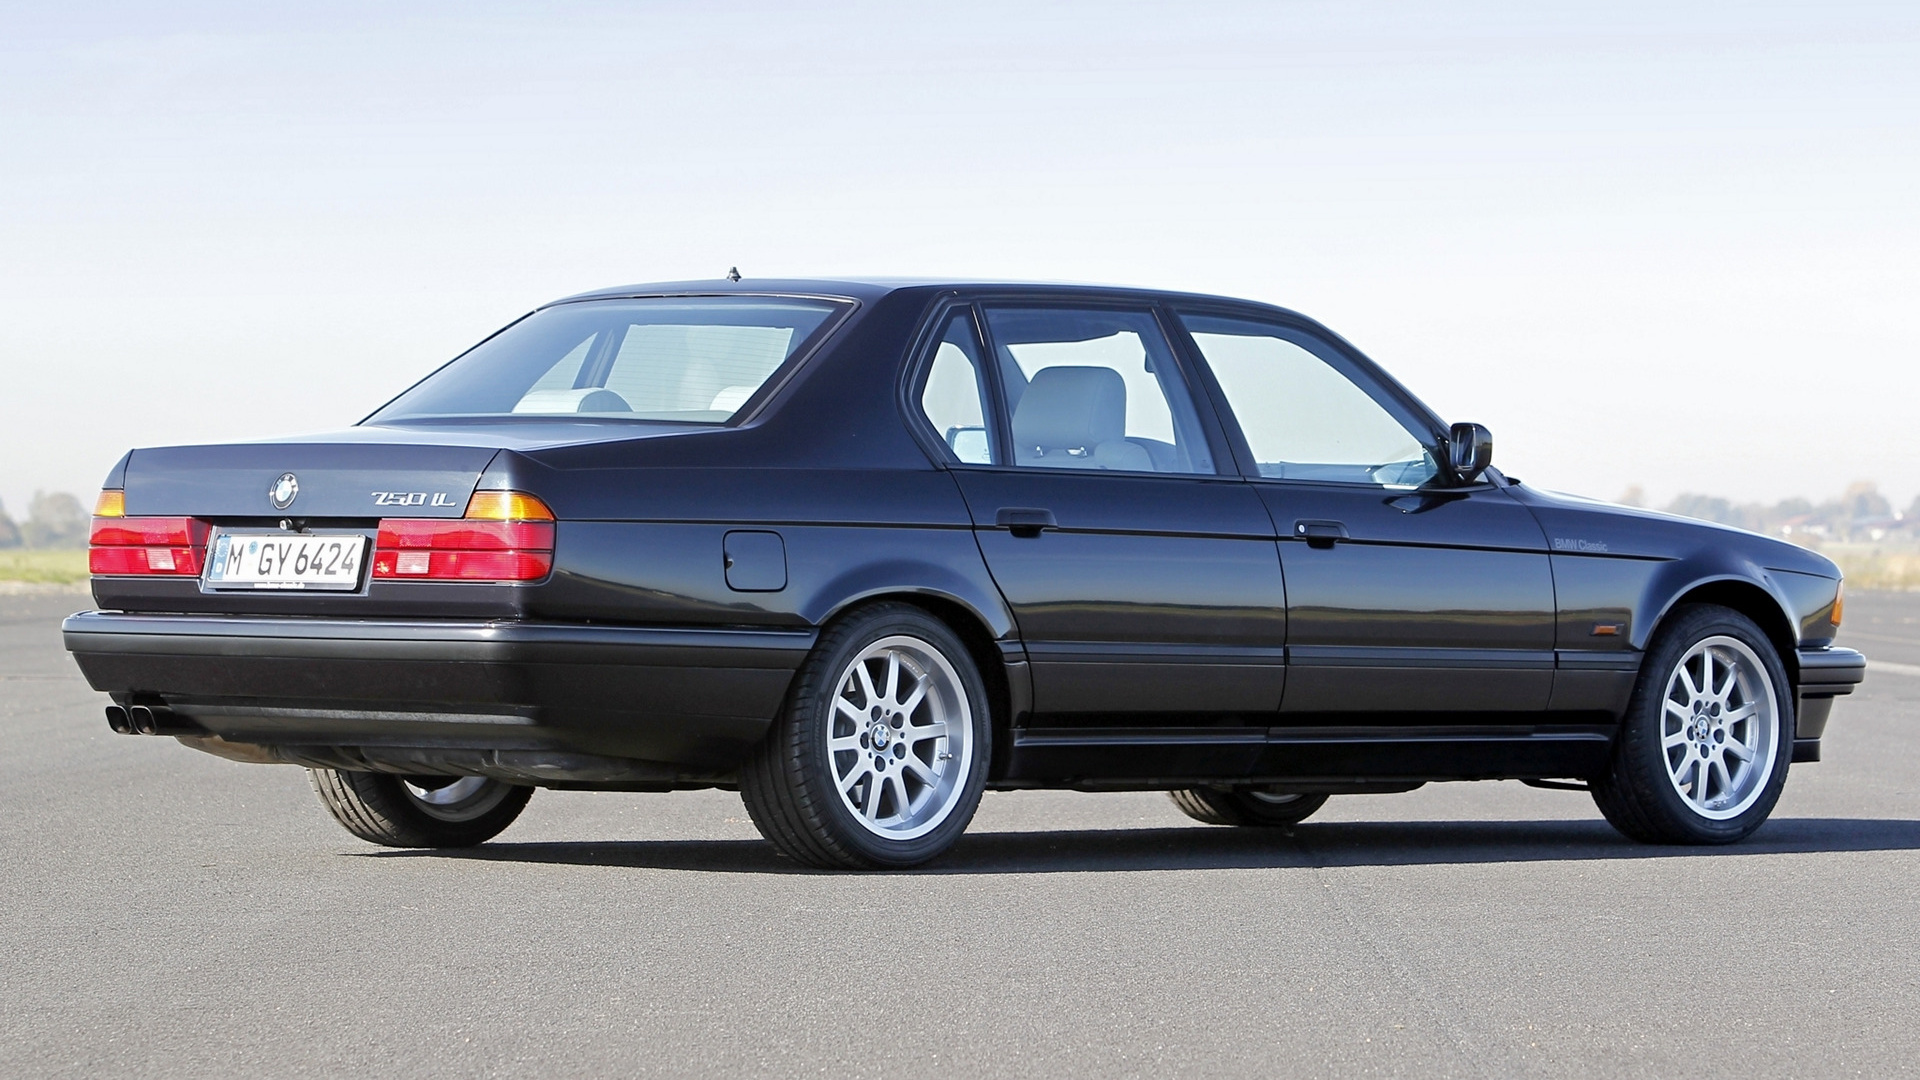 1987 BMW 750iL Full HD Wallpaper and Background Image | 1920x1080 ...